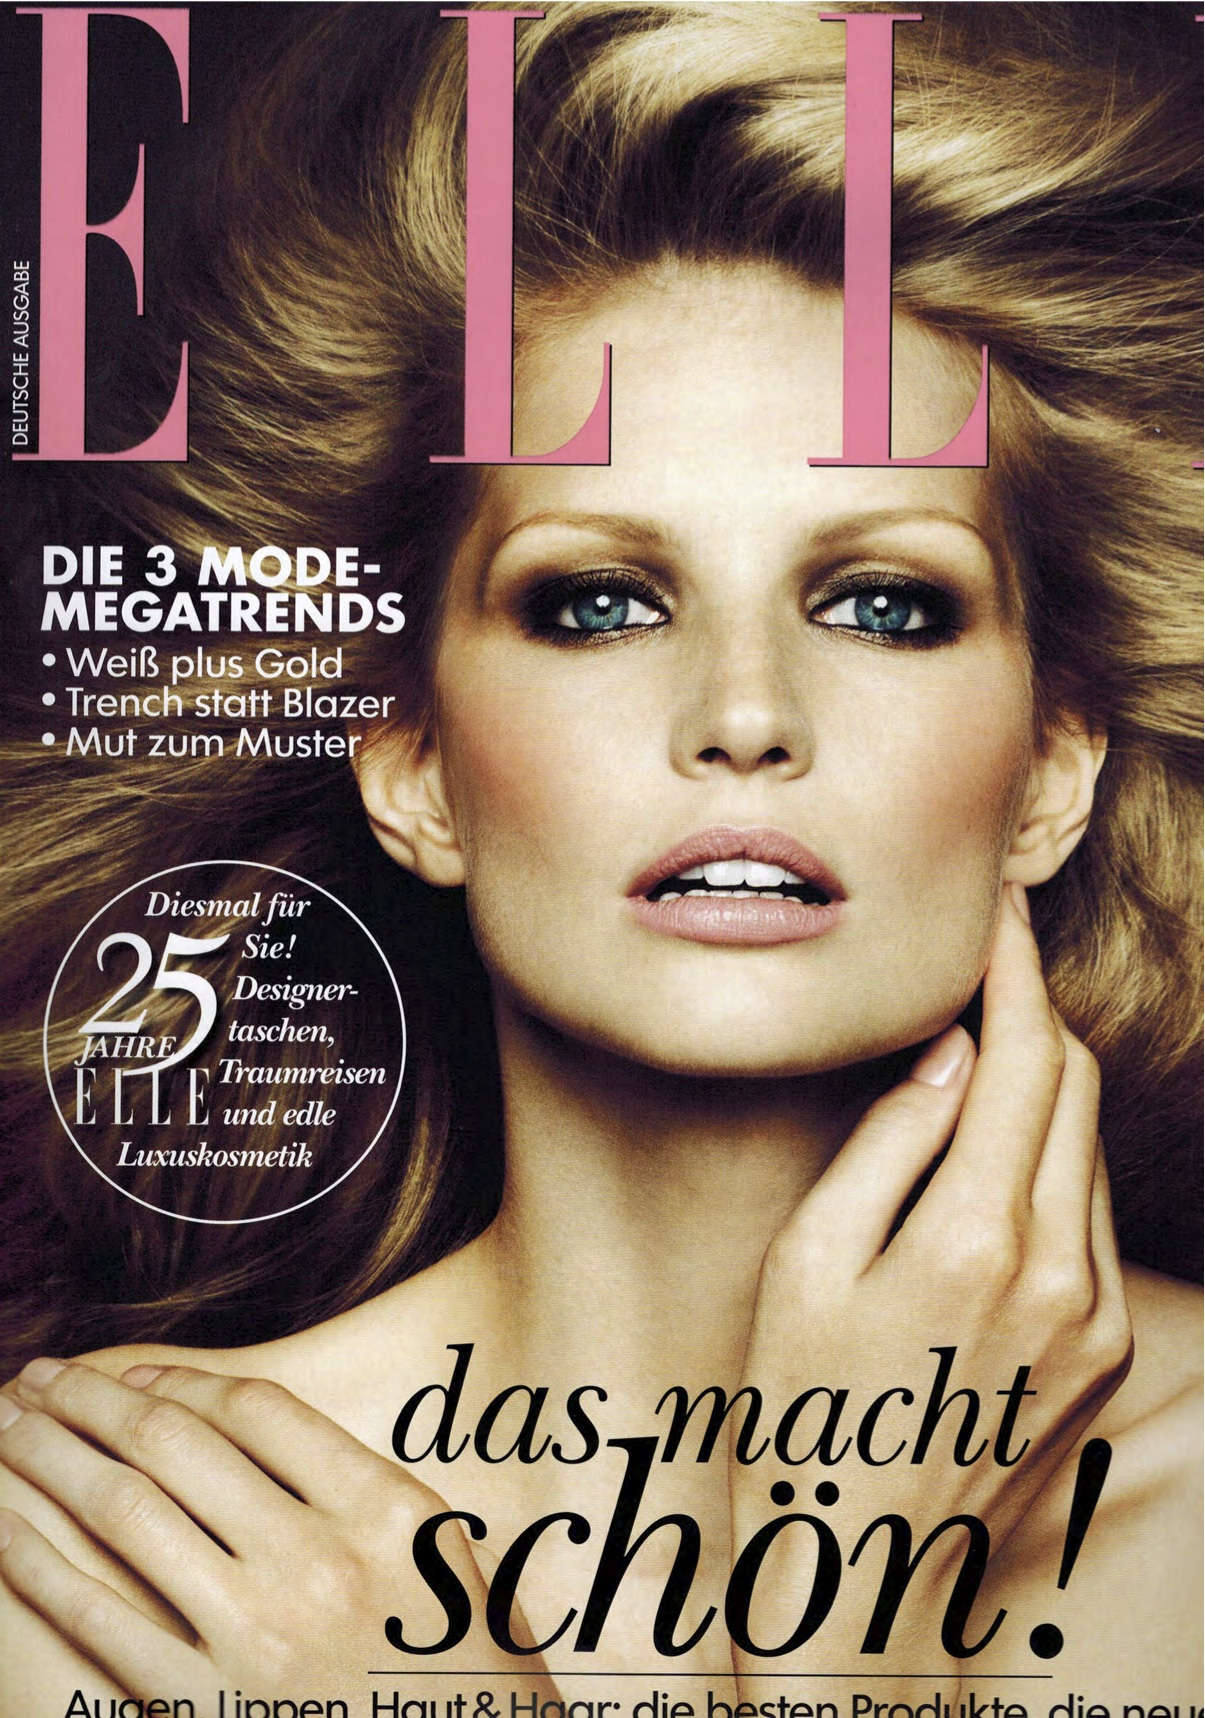 045_A4 Cosmetics_Elle 04 2015 Cover.jpg